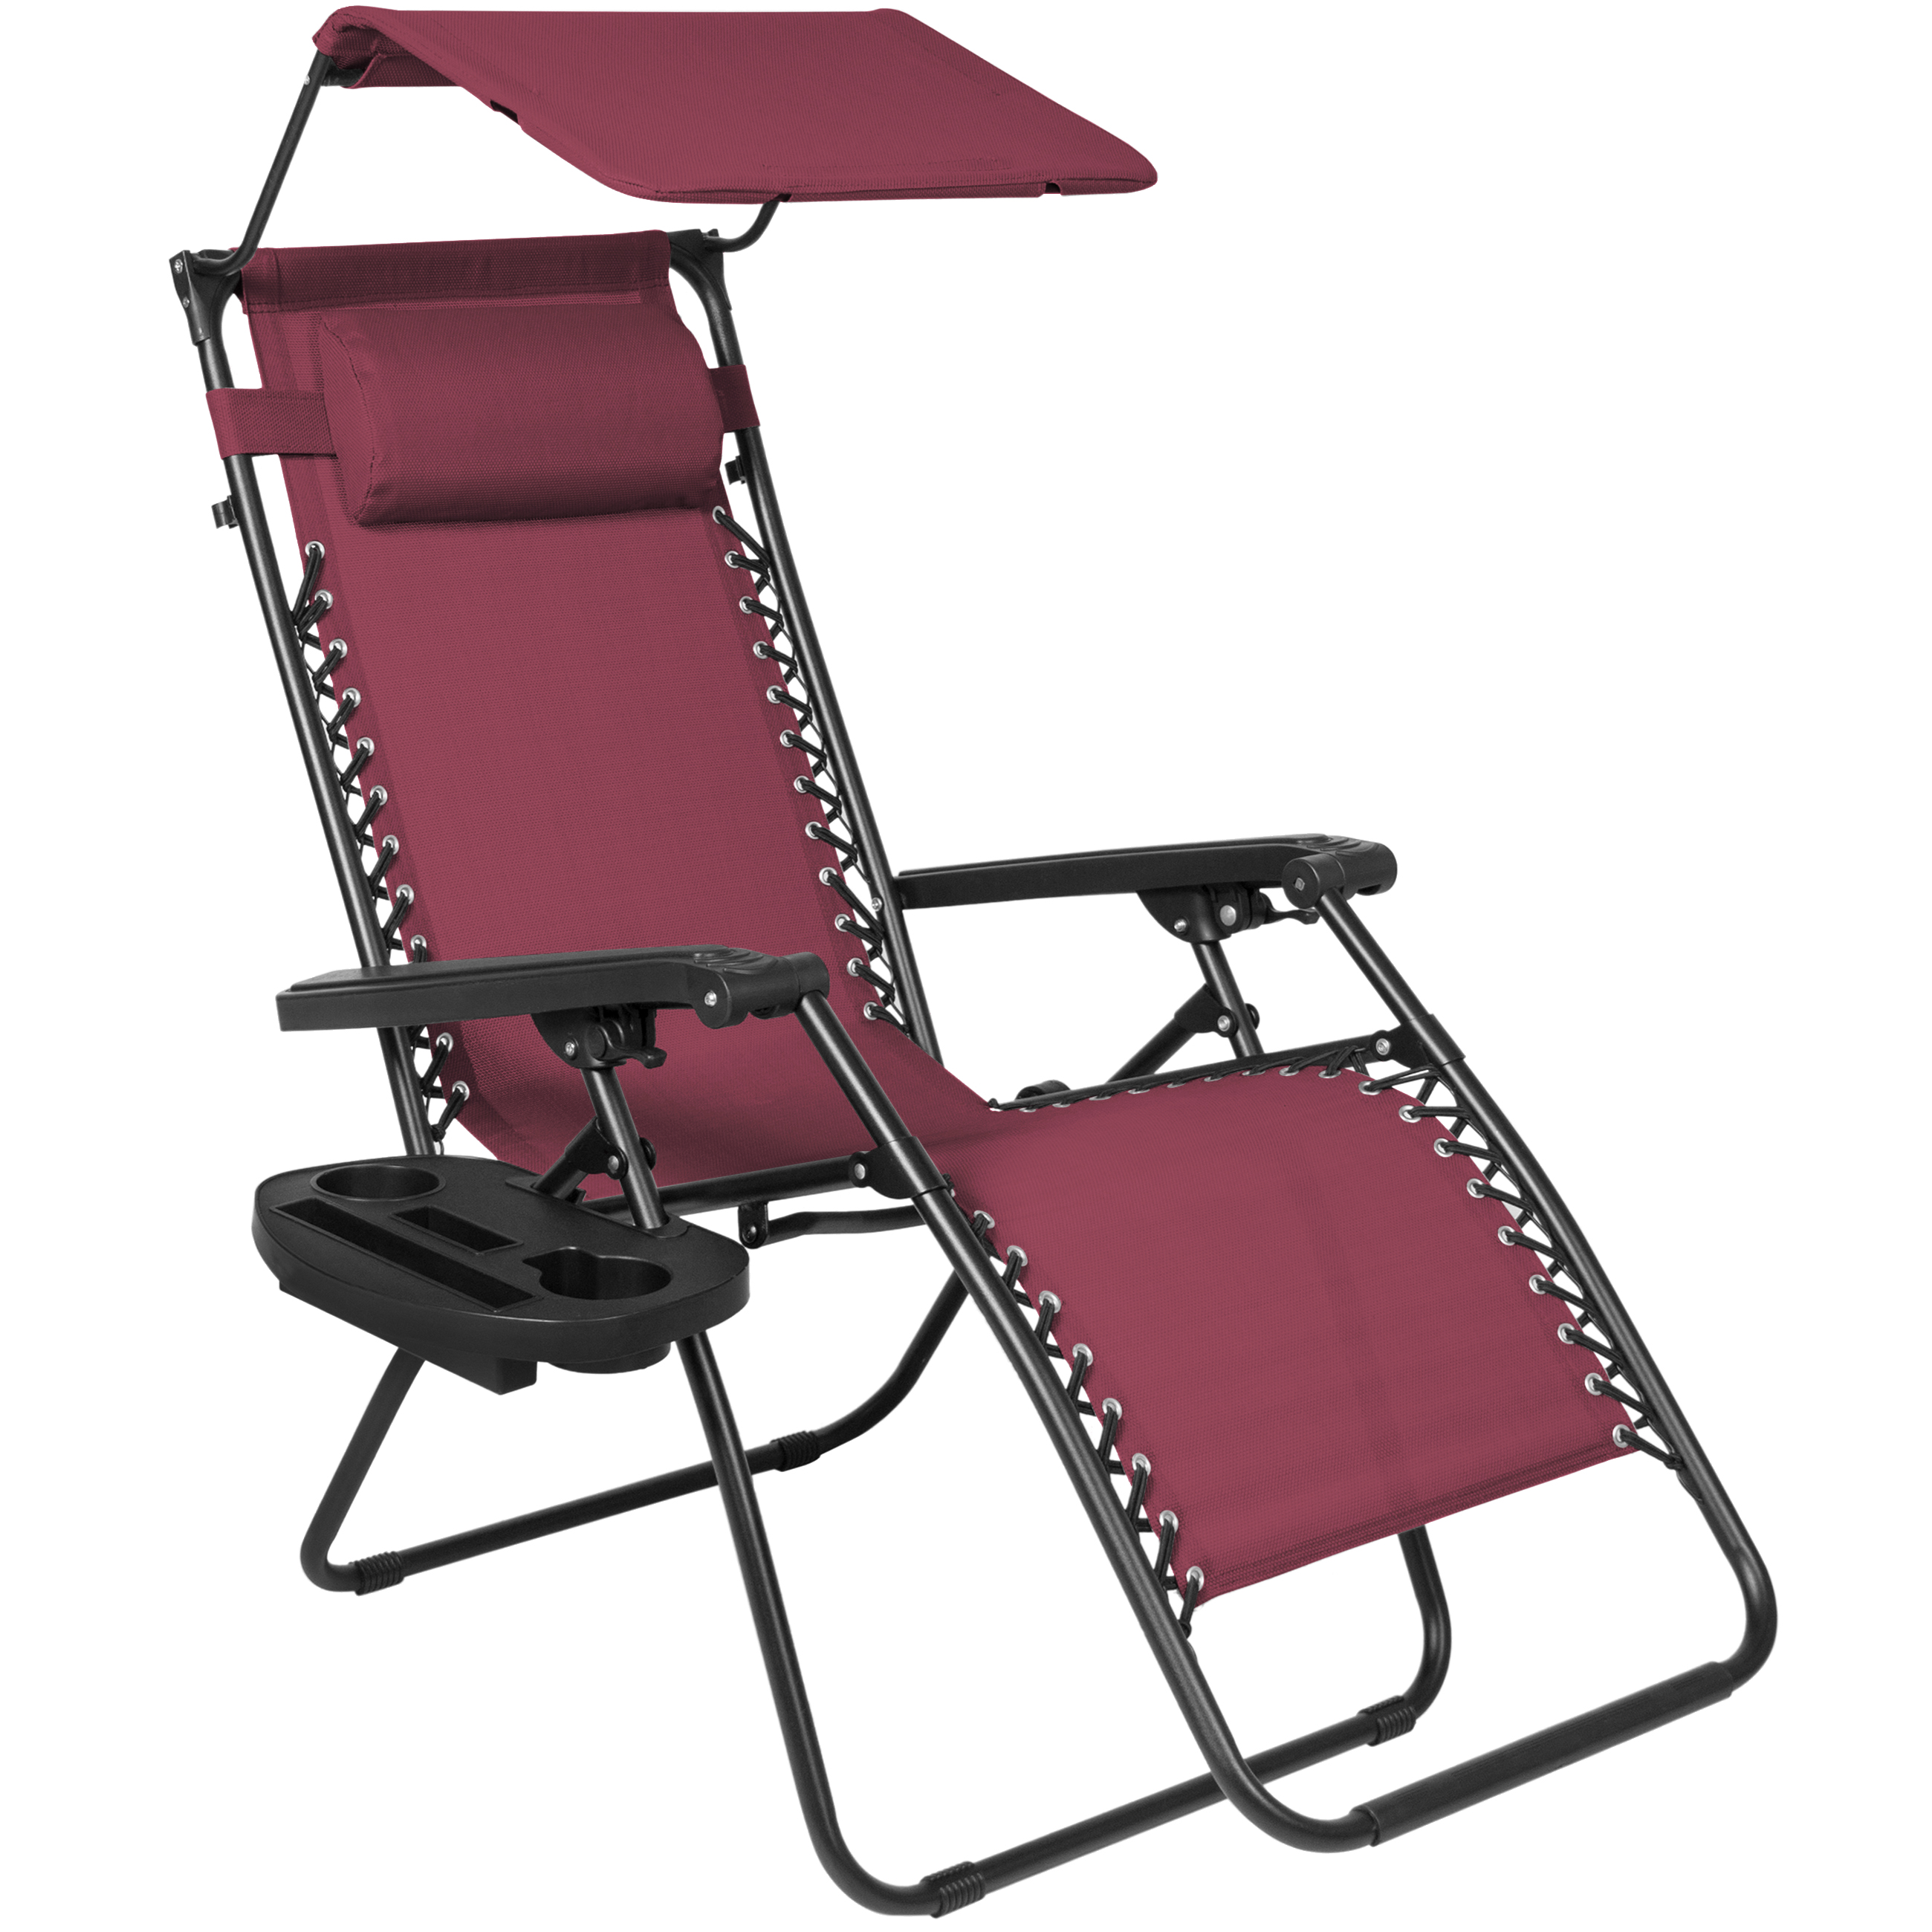 Best Choice Products Folding Zero Gravity Recliner Lounge Chair W/ Canopy  Shade U0026 Magazine Cup